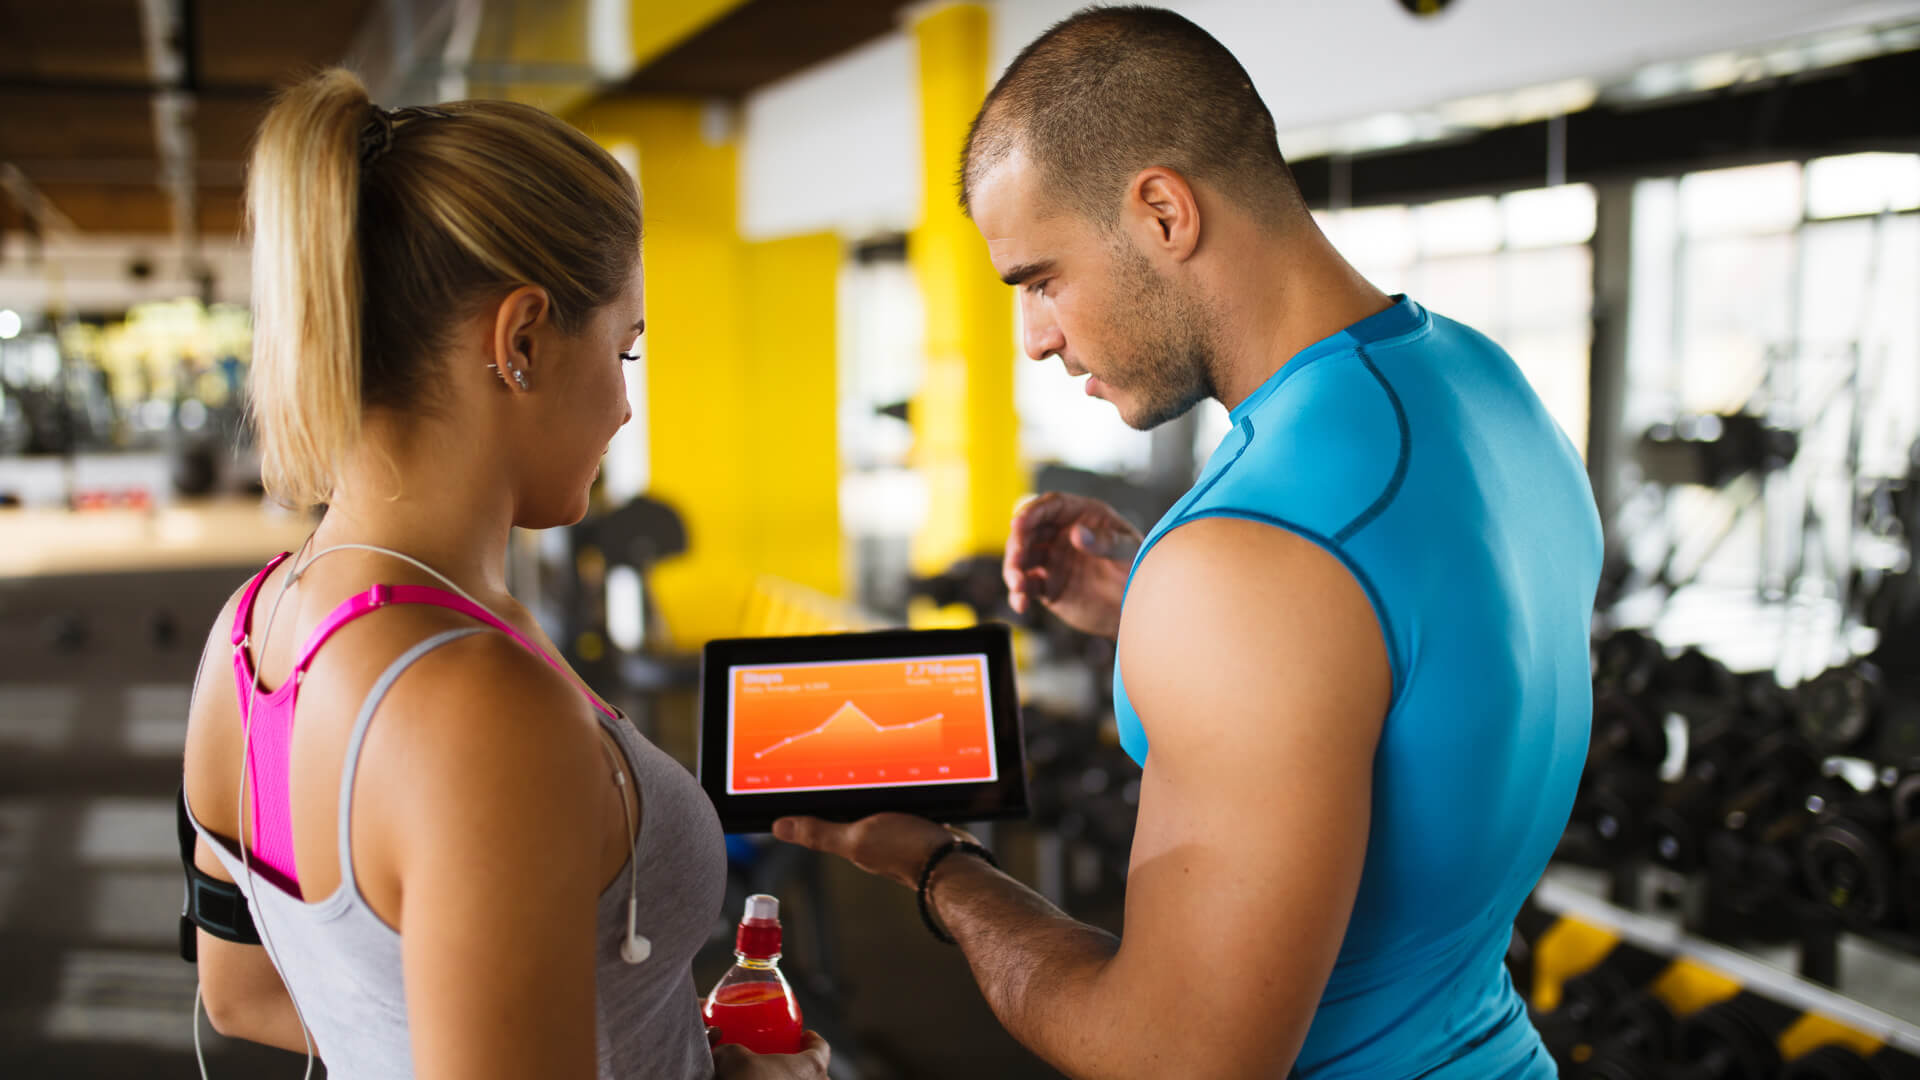 Young sporty woman is discussing workout plan, progress and statistics with her fitness instructor using digital tablet.